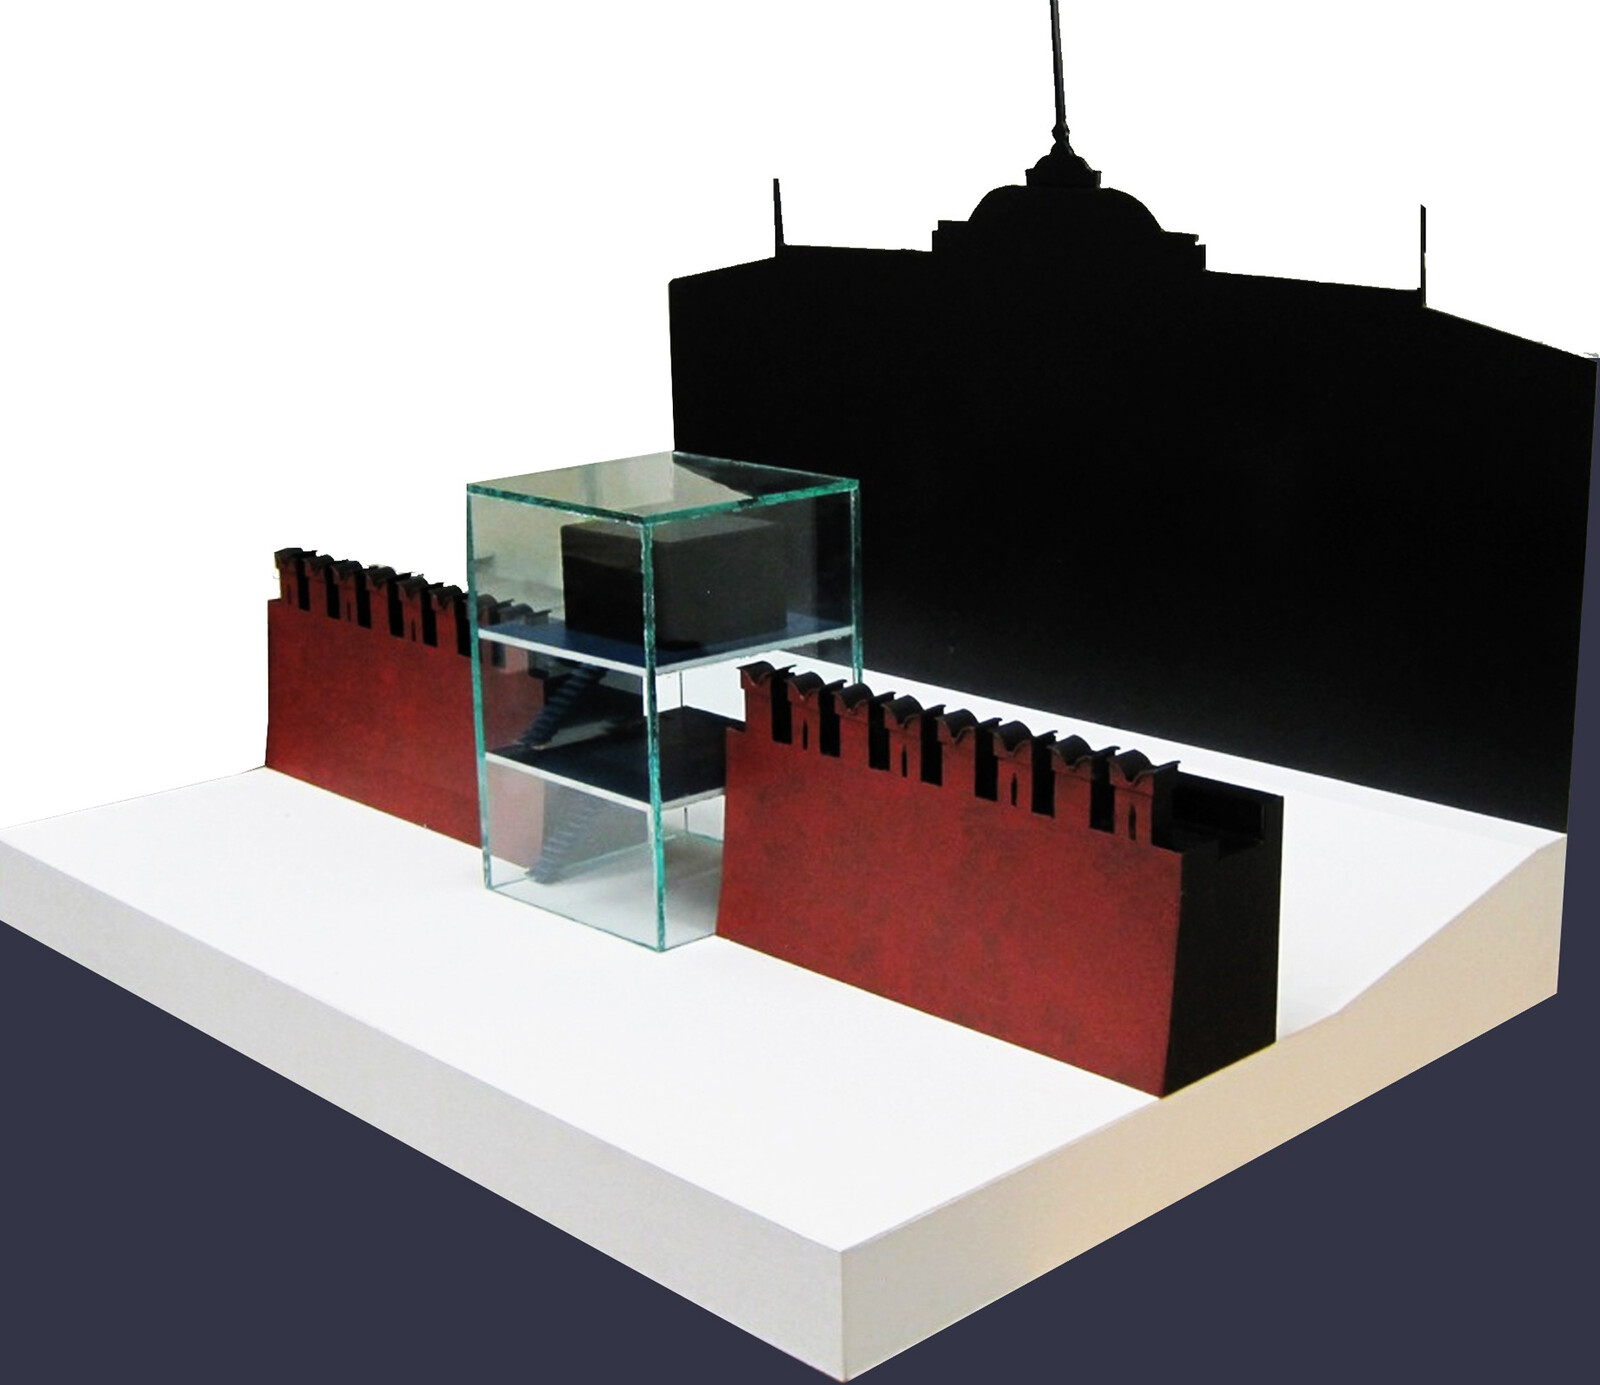 competition - House for the Star (Mikhail Gorbachev) Layout.